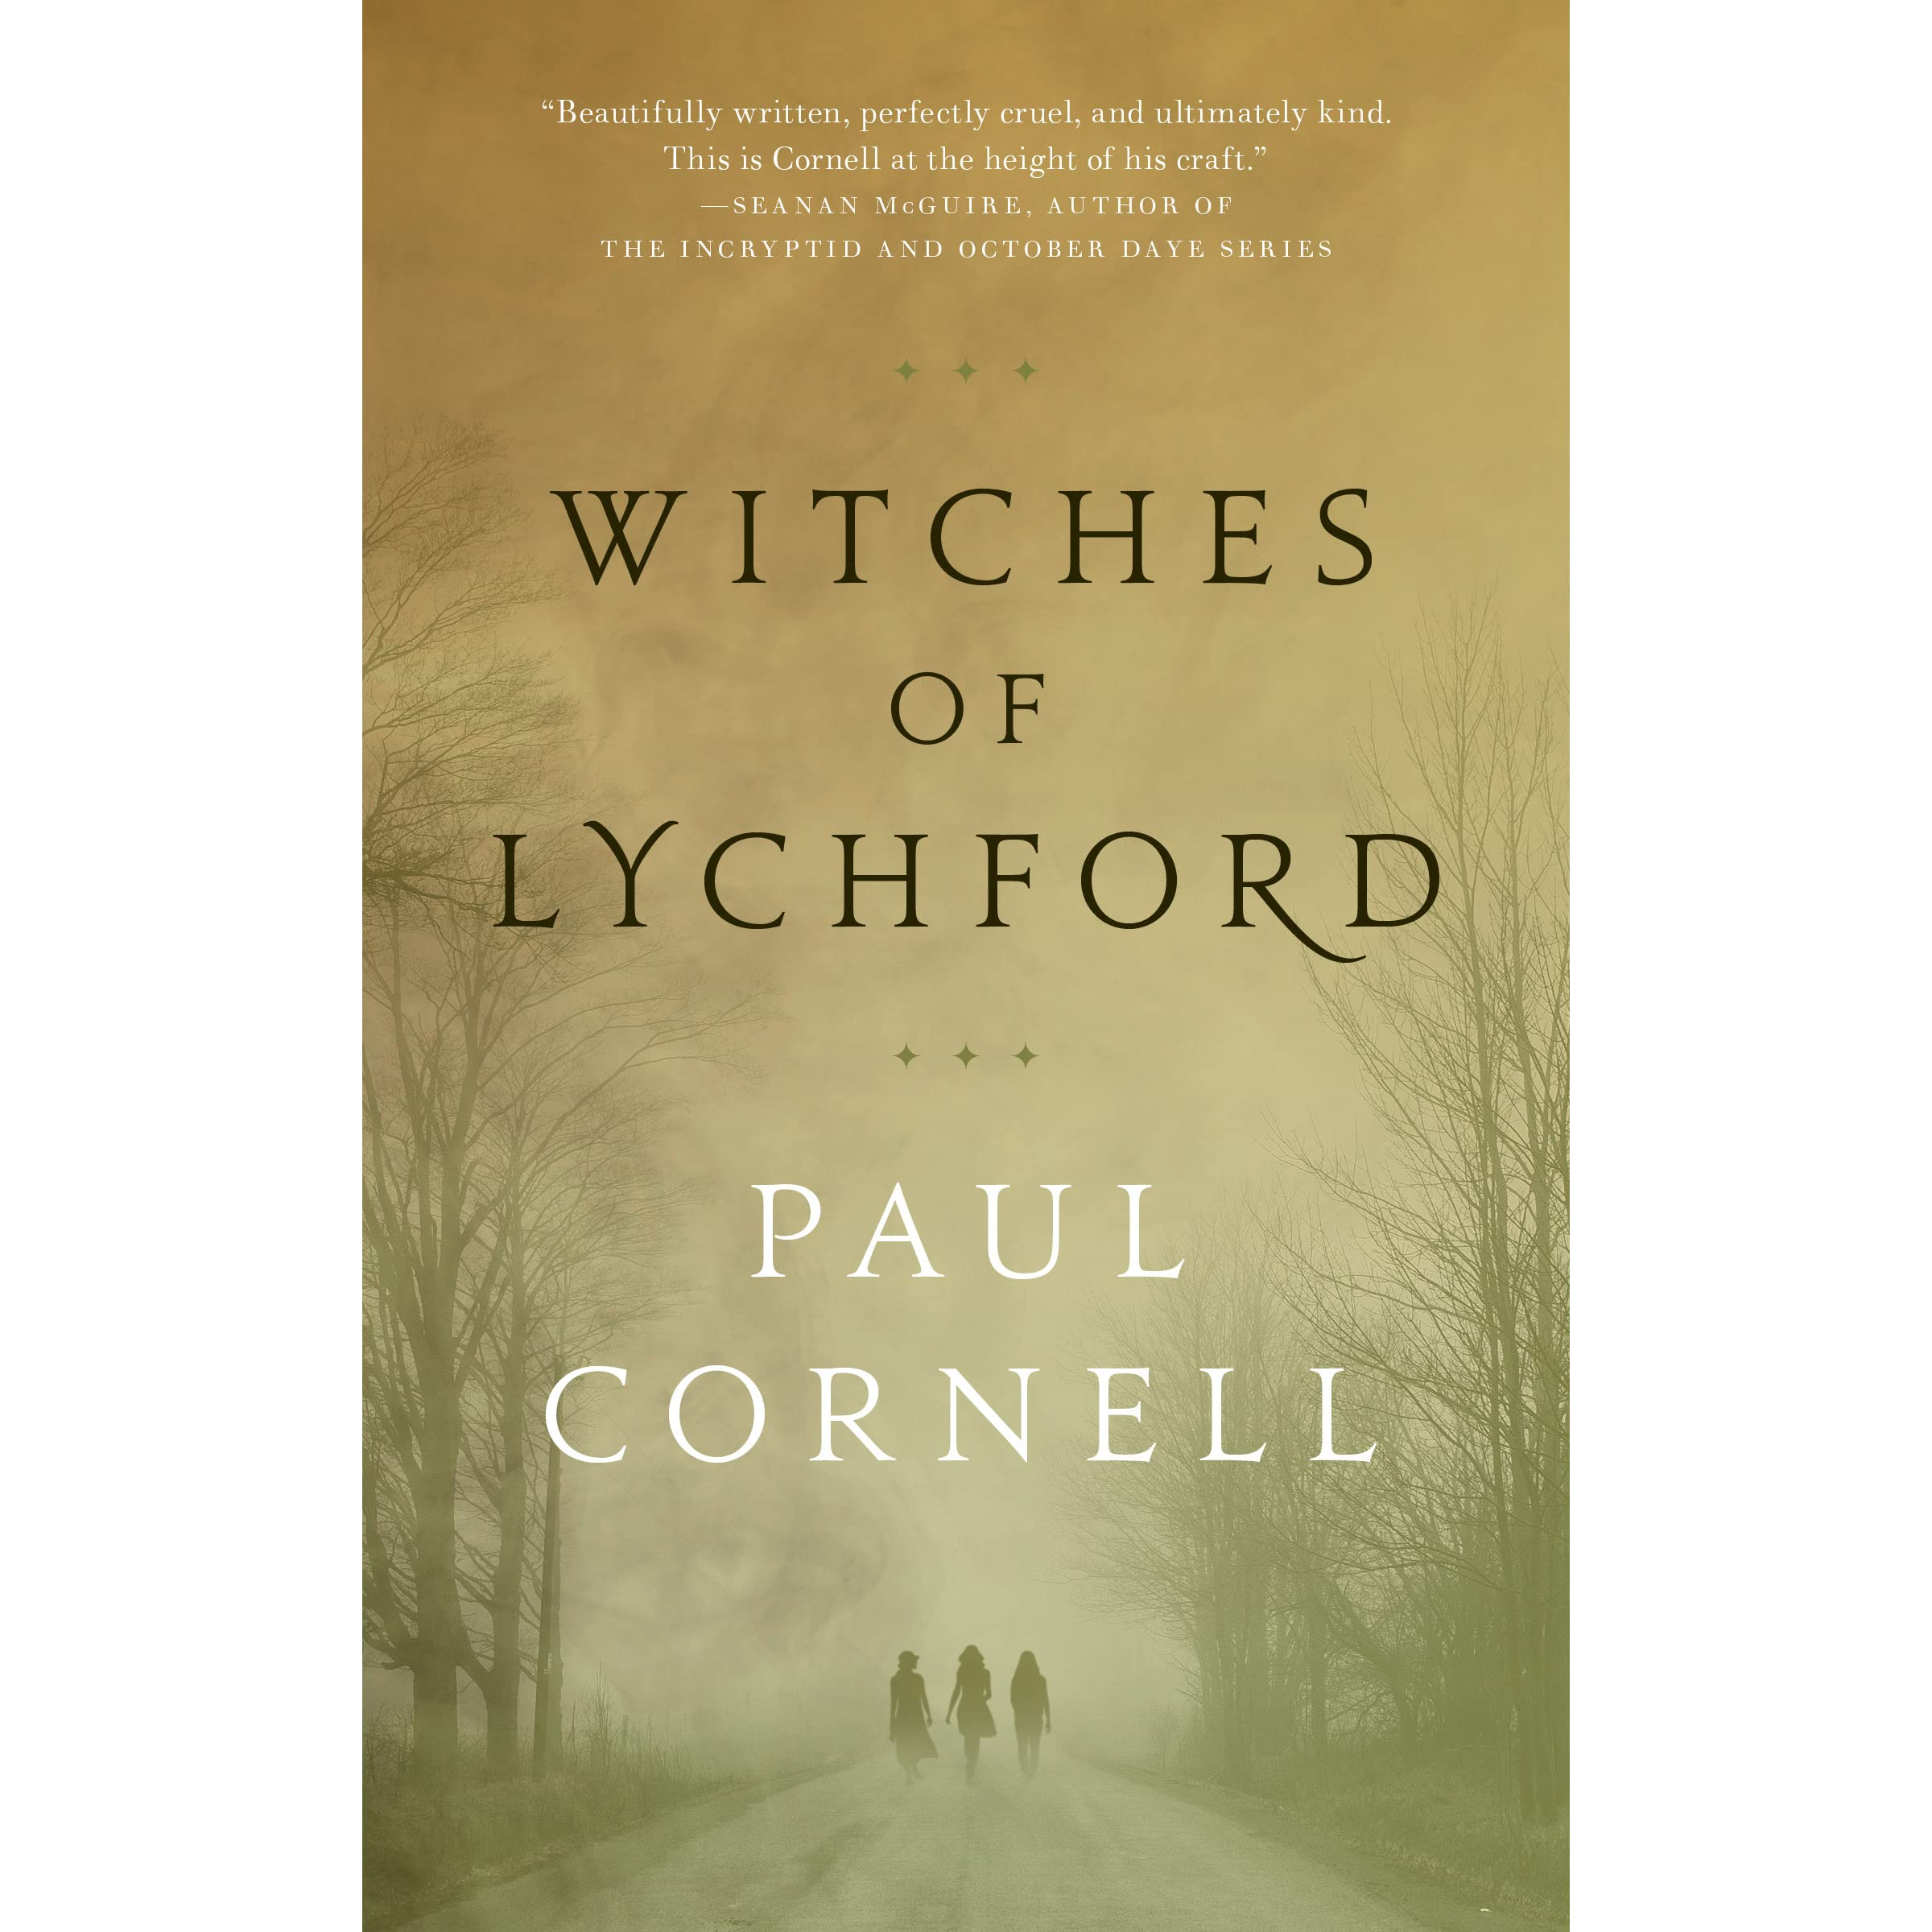 Witches of Lychford (Lychford, #1) by Paul Cornell